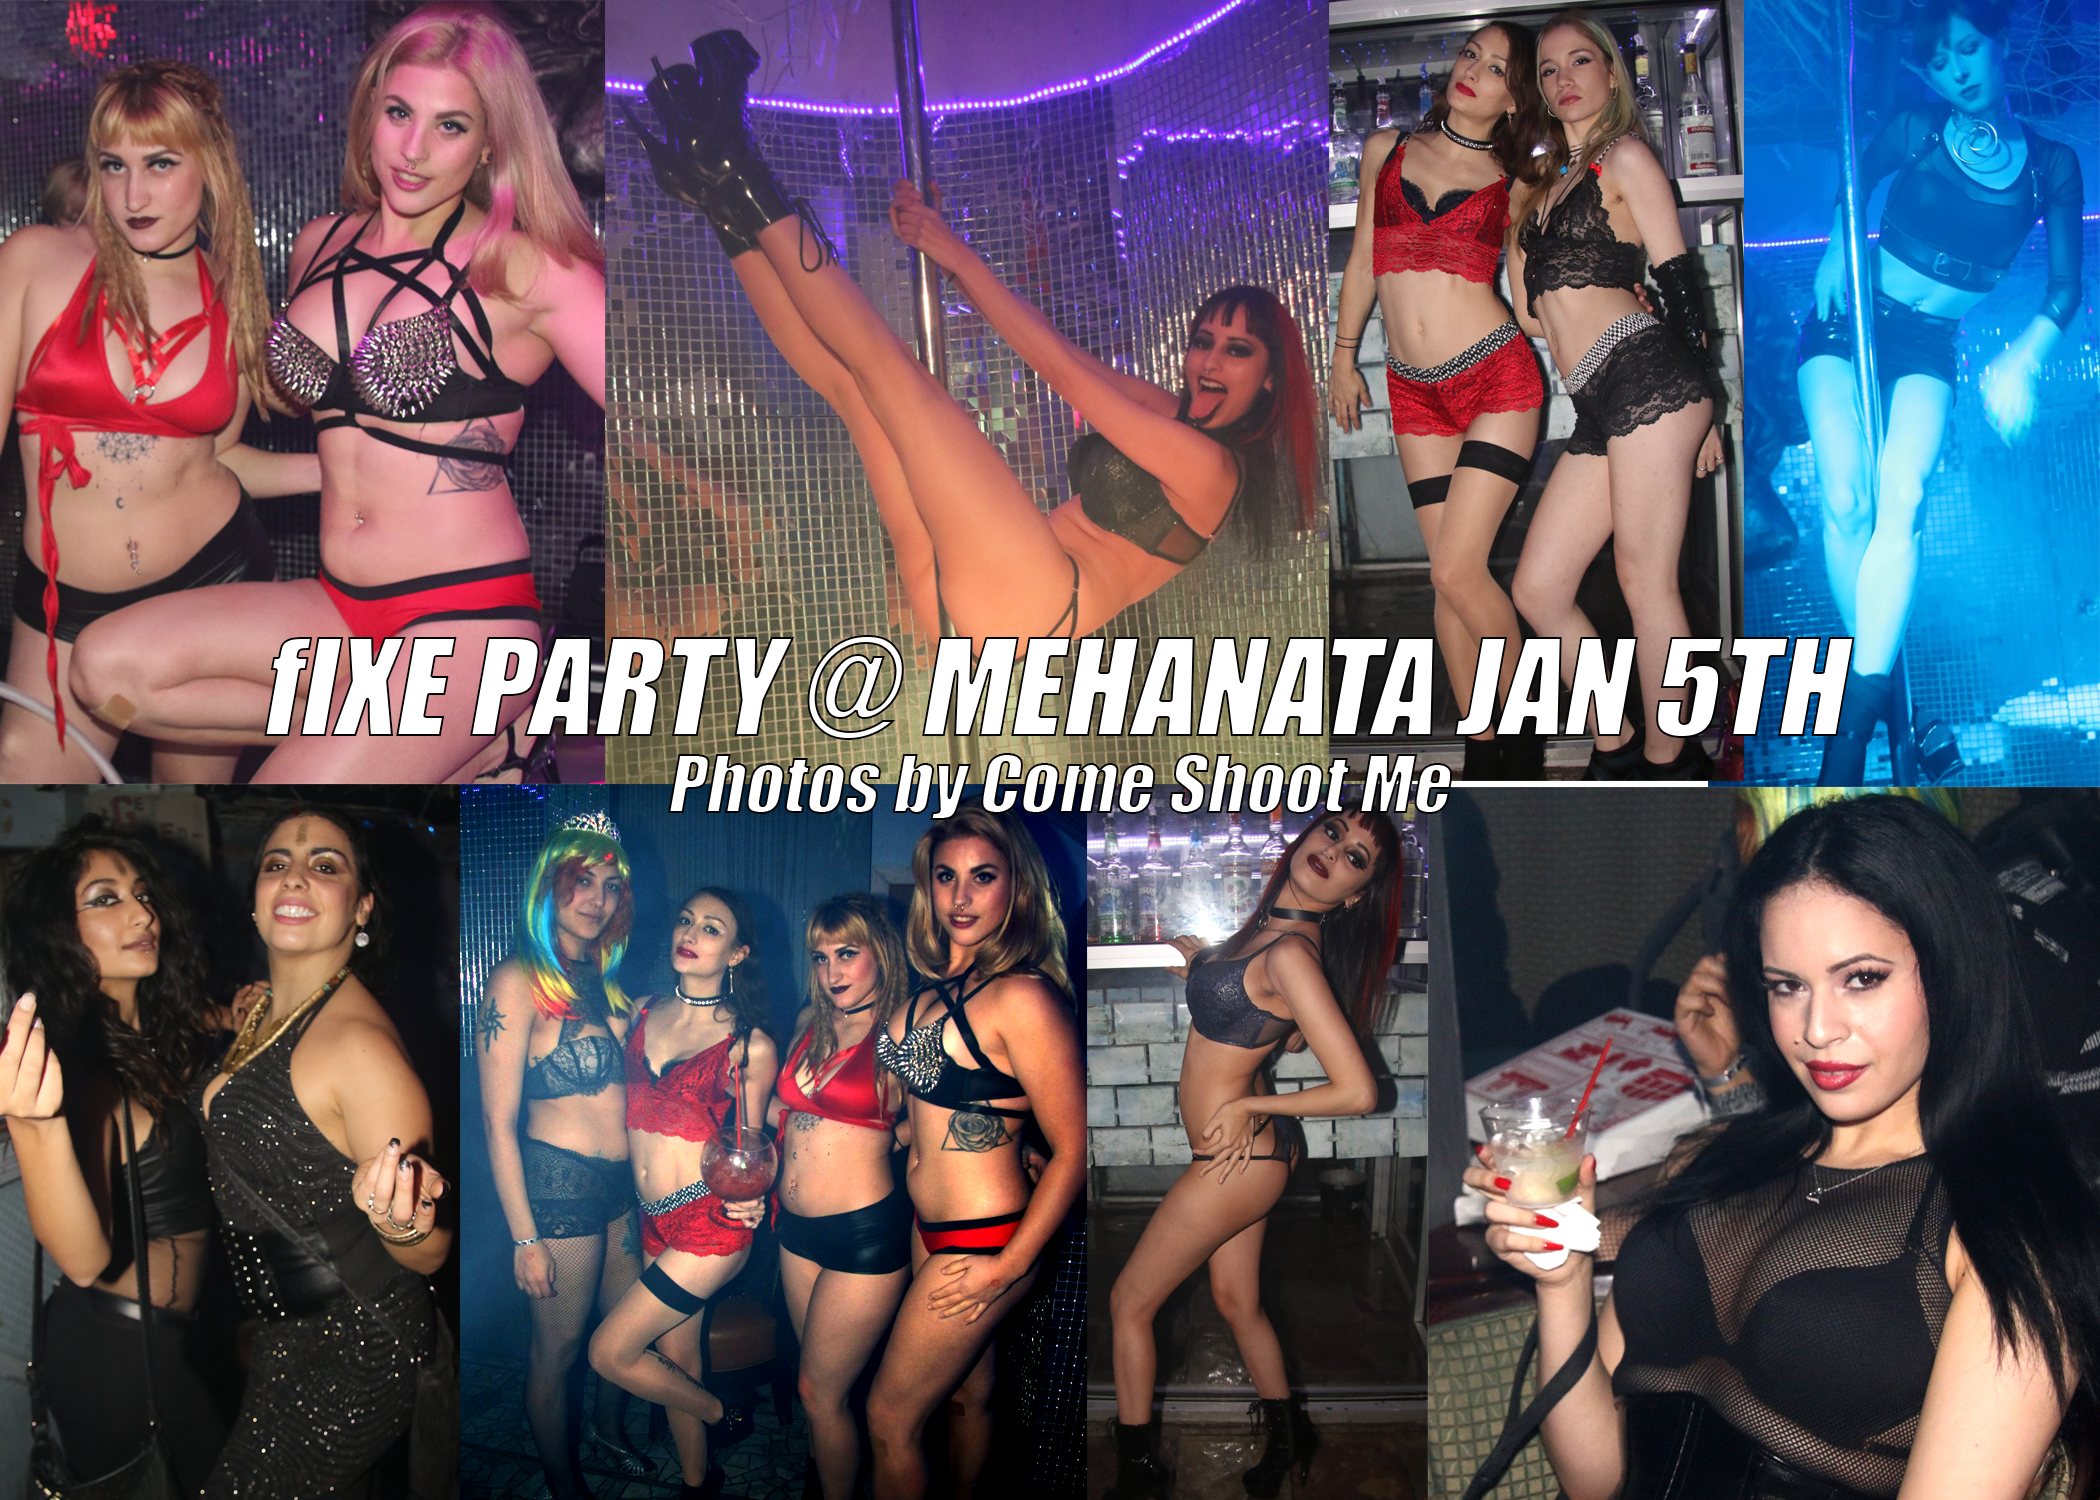 fIXE Party @ Mehanata Jan 5th Photos by Come Shoot Me